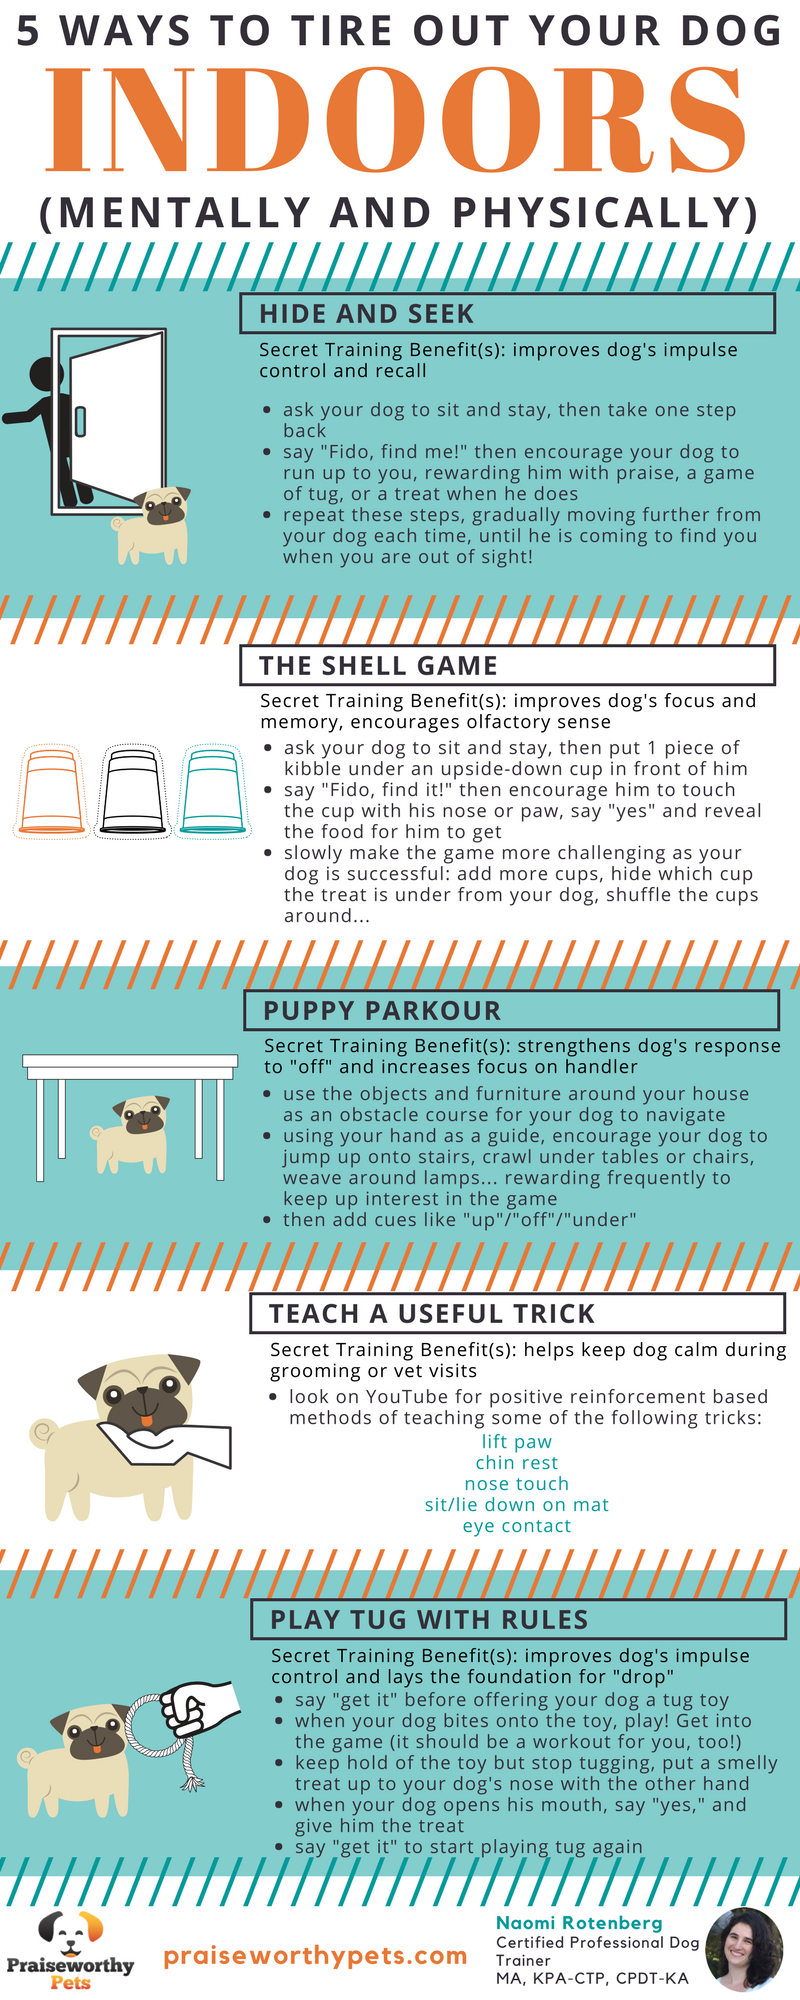 5 ways to tire out your dog.png